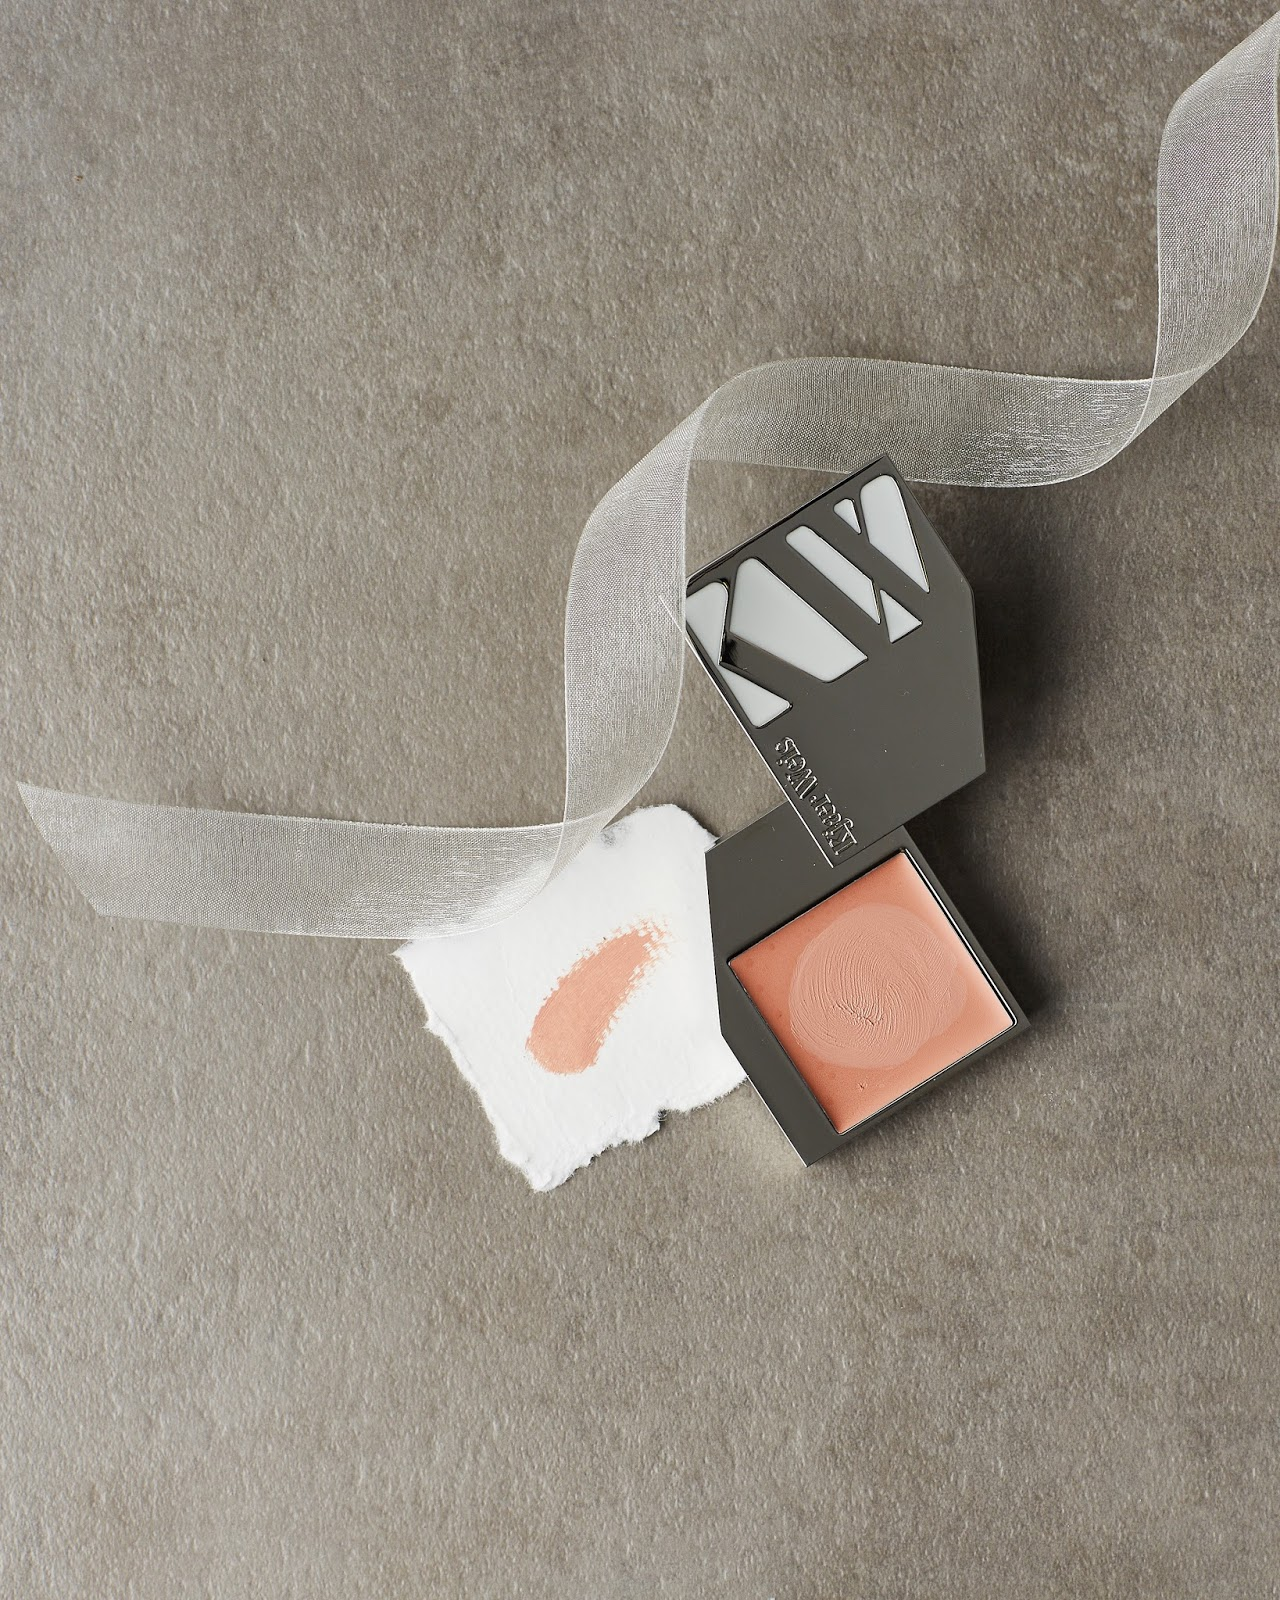 Kjaer Weis Cream Blush Embrace Swatch and Review